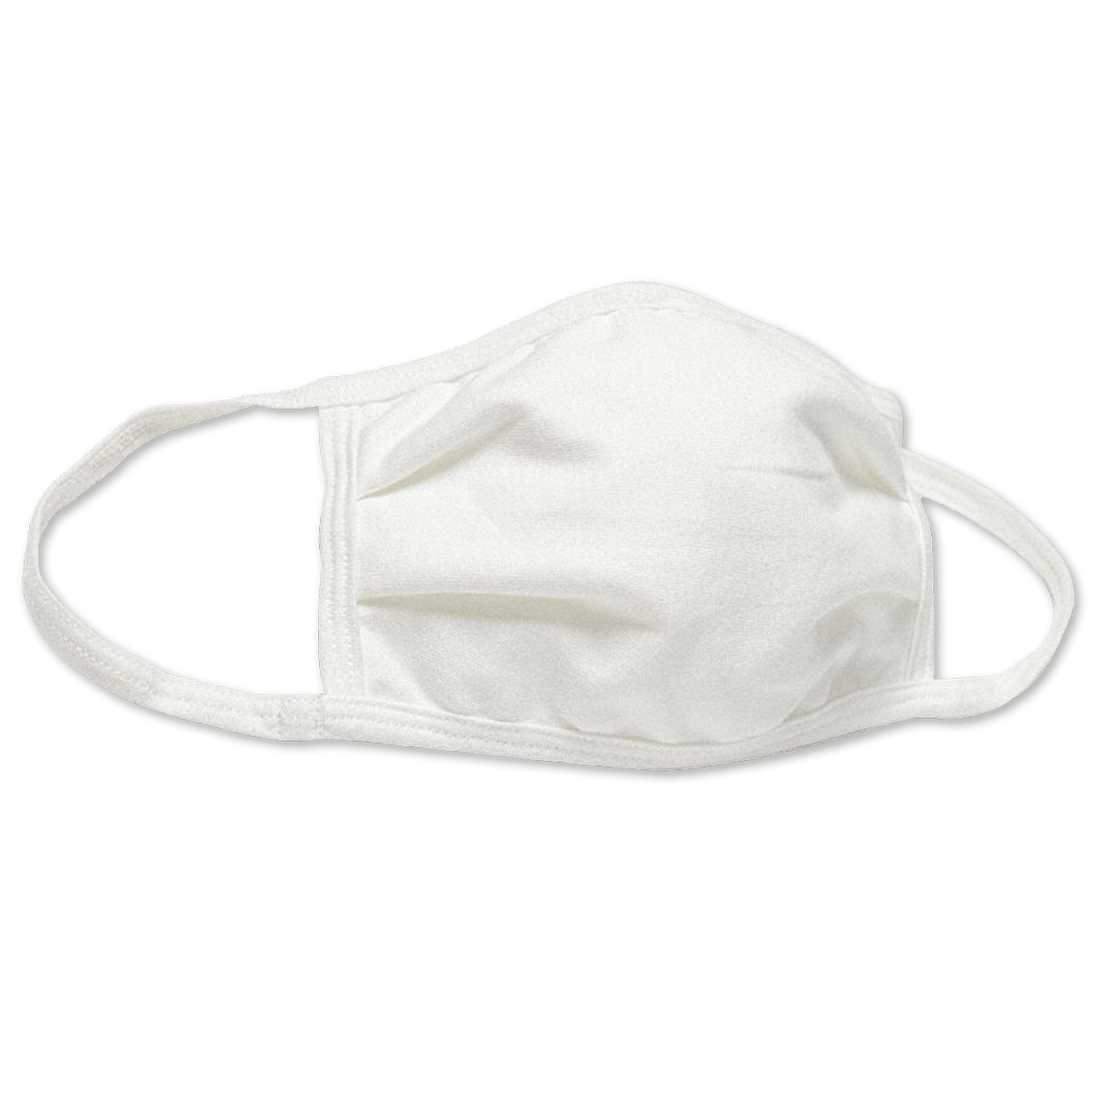 Reusable Cloth Face Mask with Earloops, Universal Mask Size, White, 5-Pack